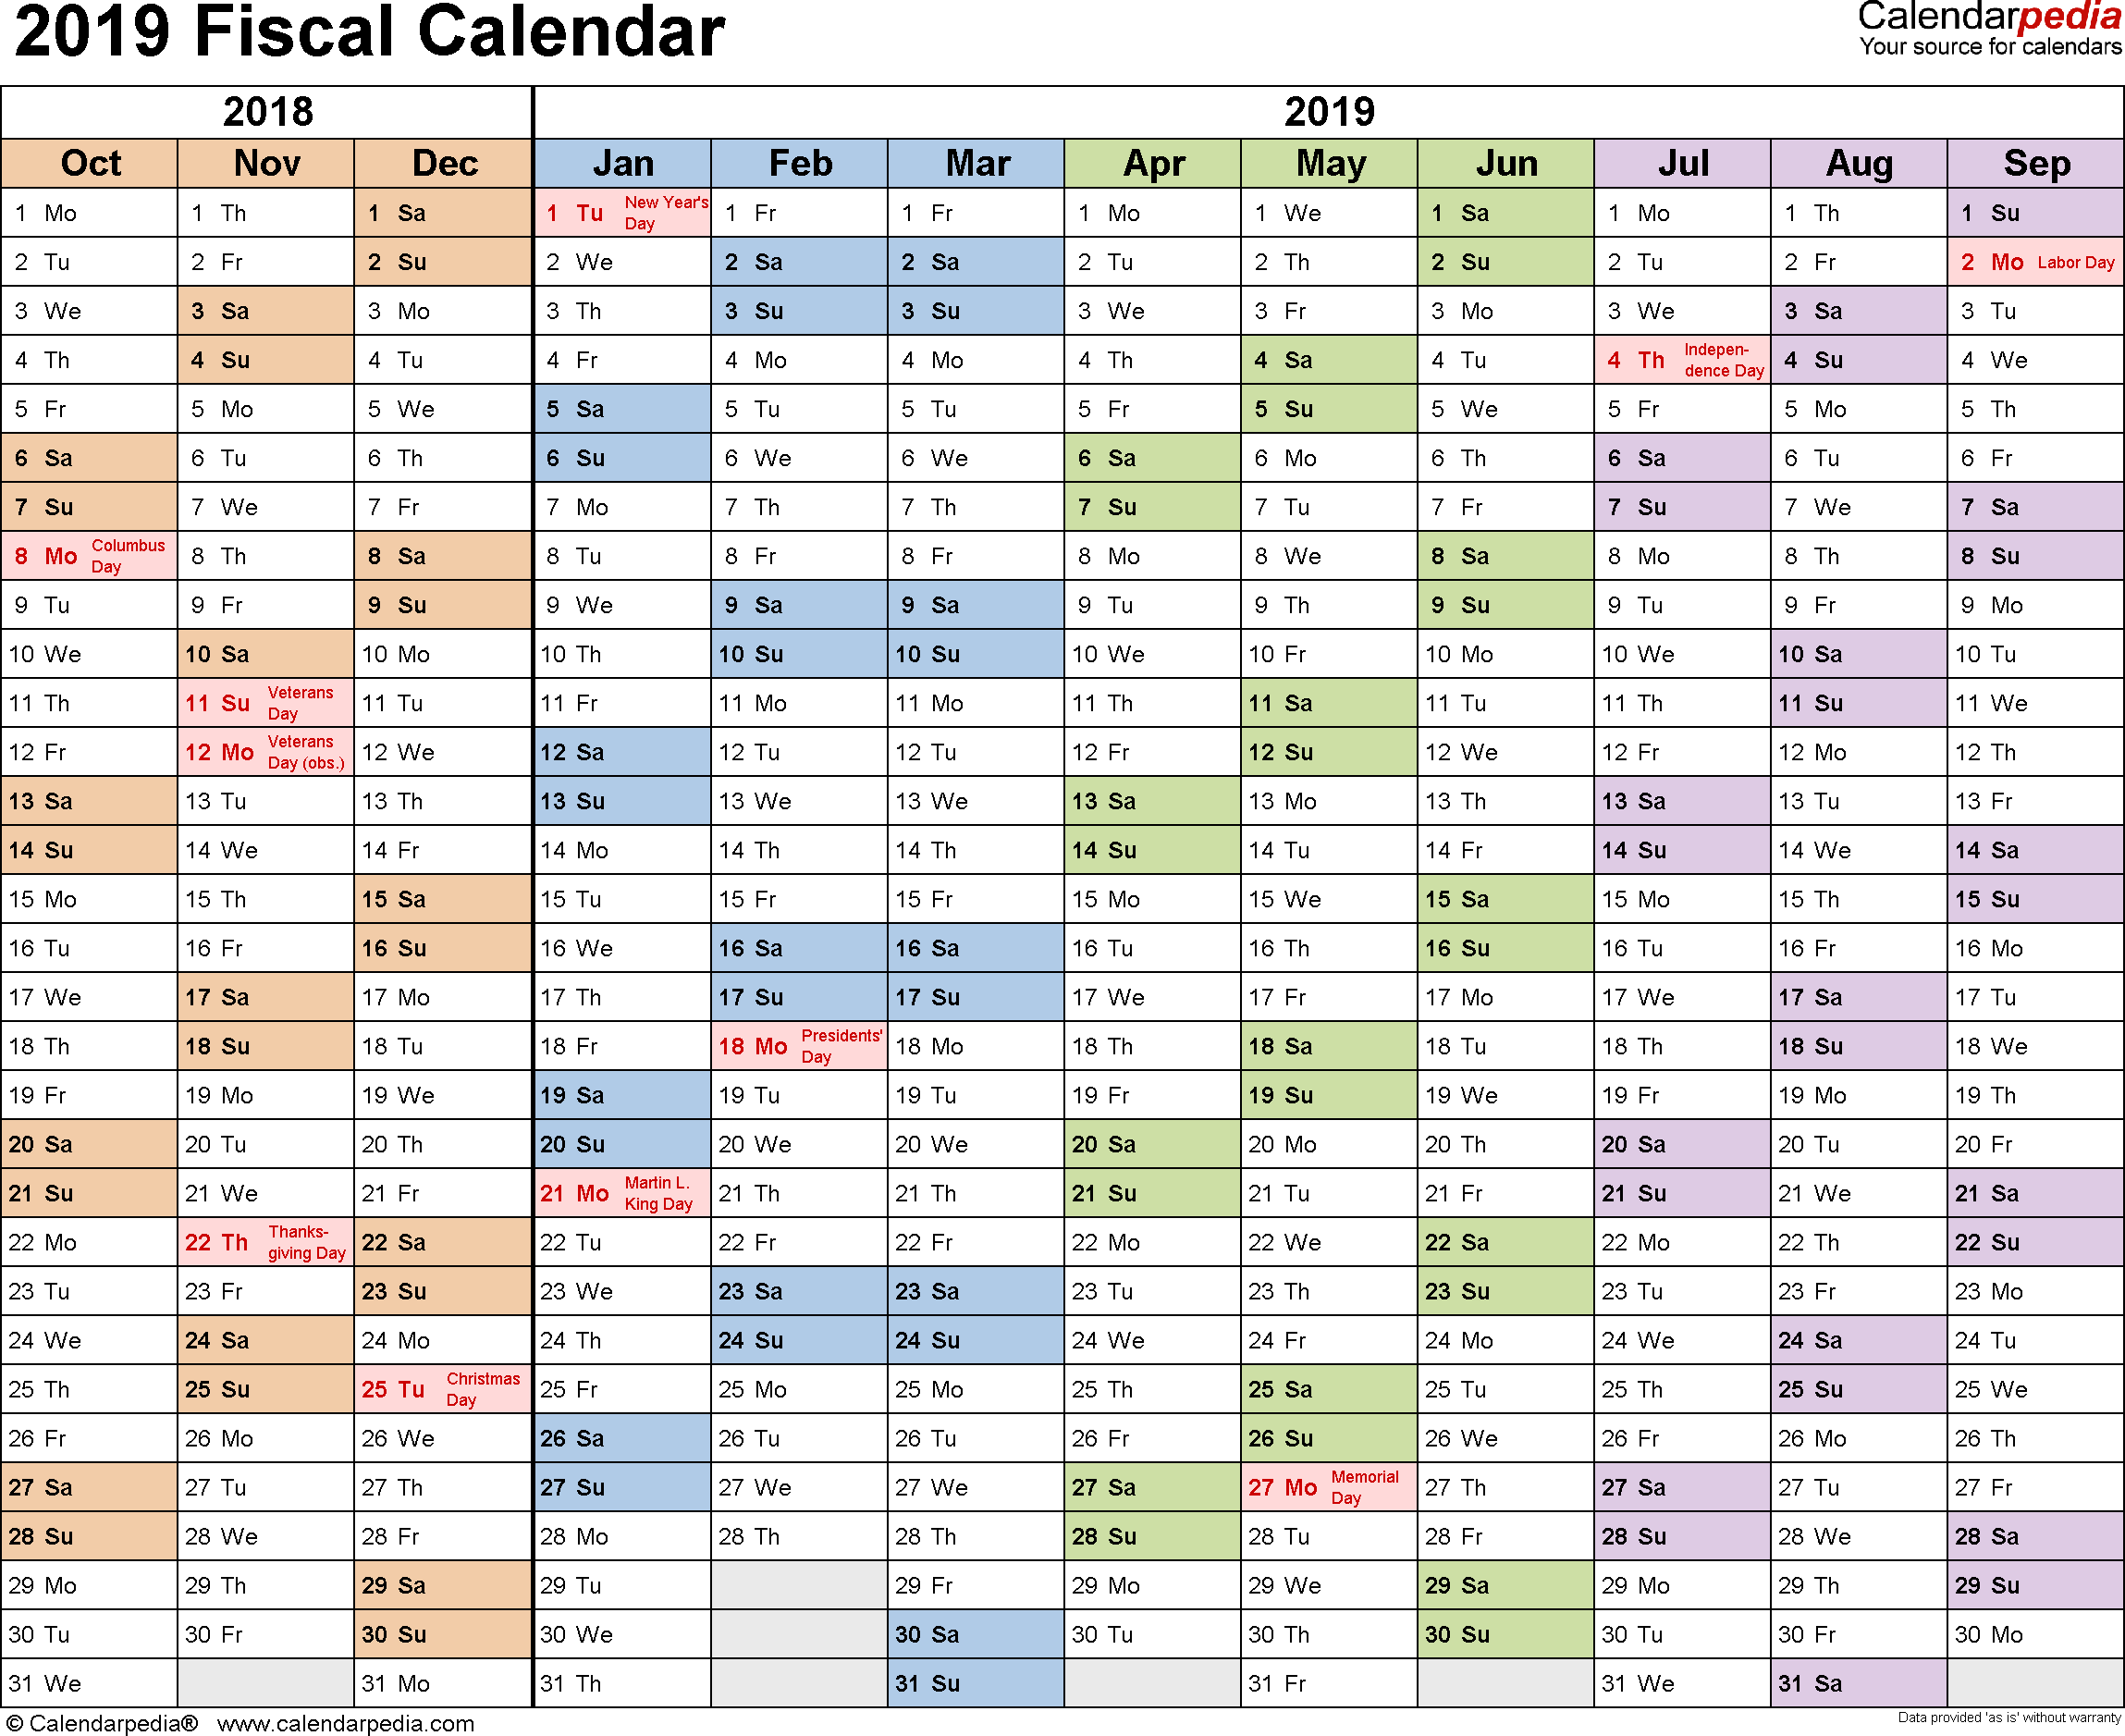 2019 Year Calendar By Month With Fiscal Calendars As Free Printable PDF Templates